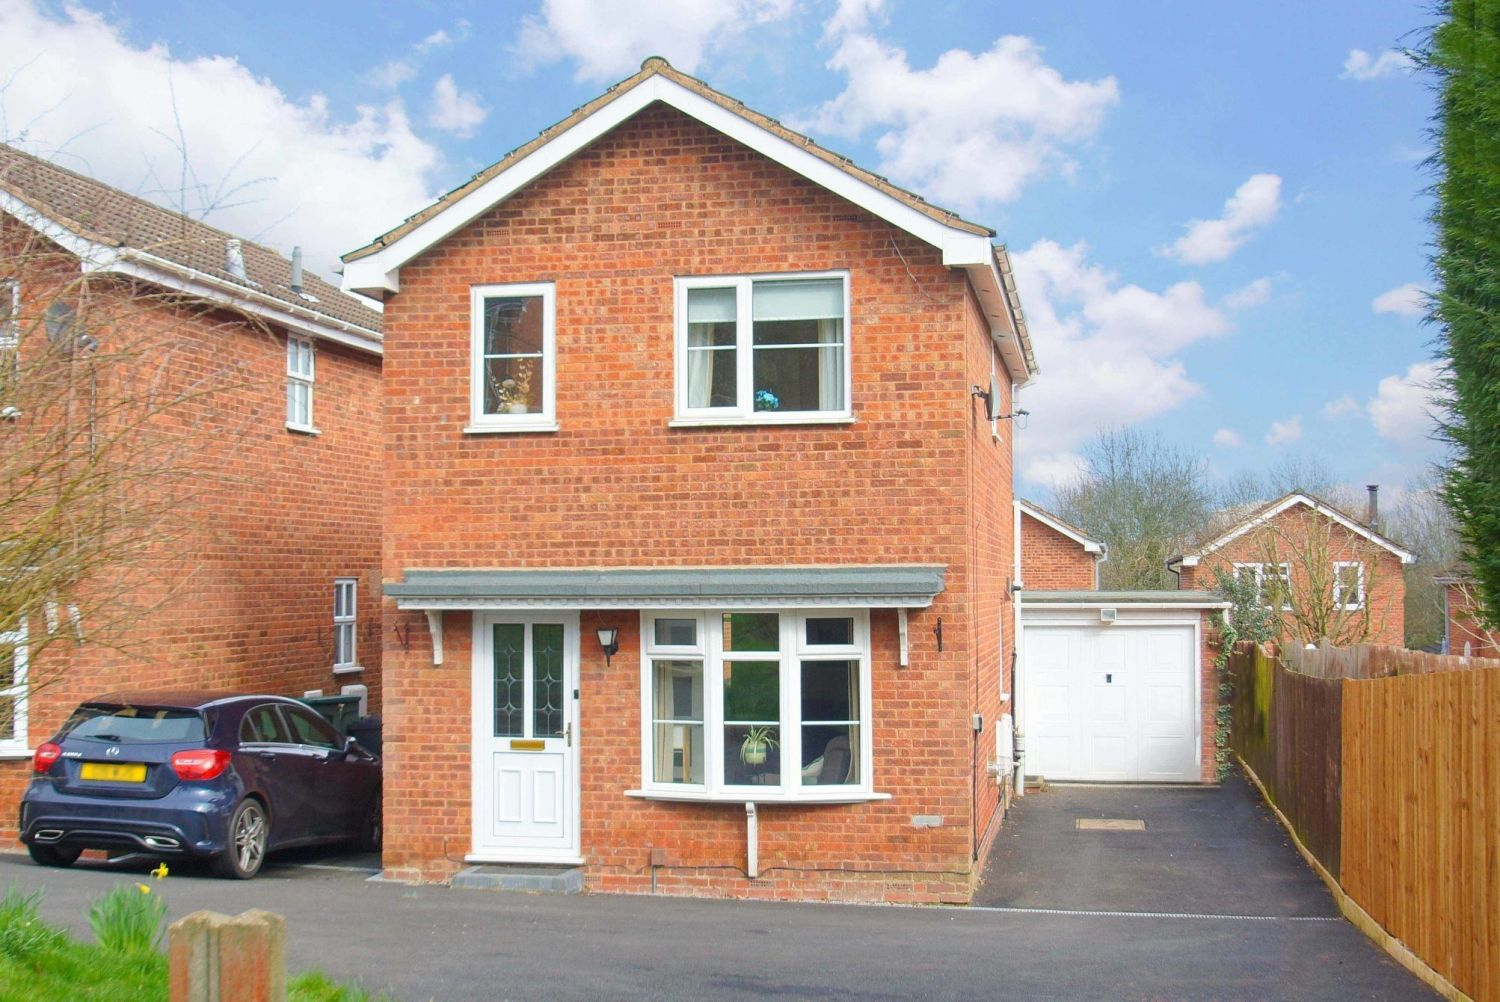 3 bed detached for sale in Painswick Close, Oakenshaw  - Property Image 1